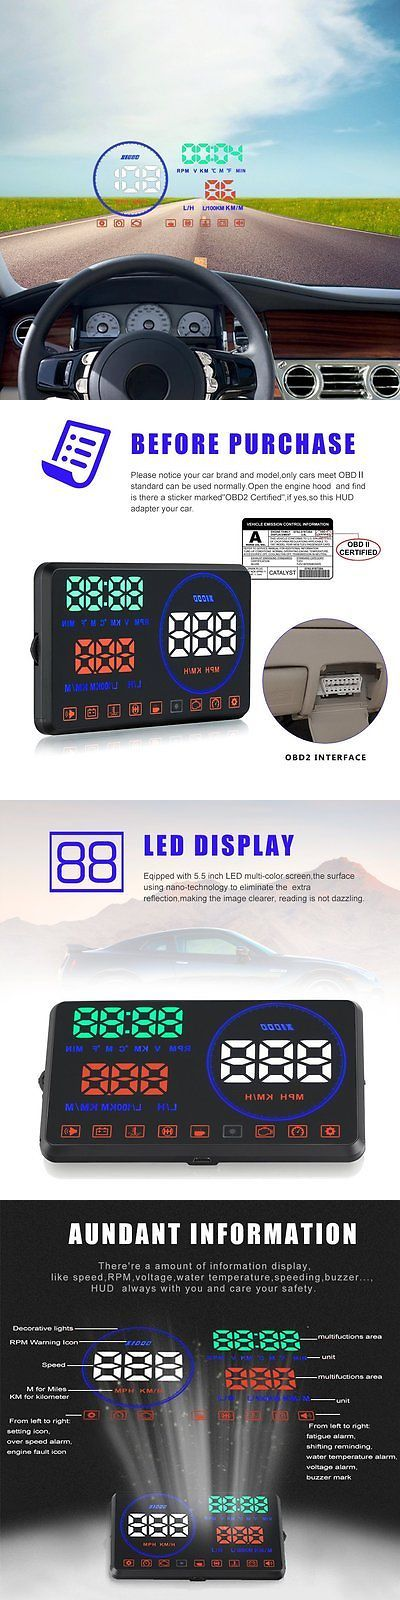 Replacement Faceplates: Head Up Display Obd2,Techstick 5.5 Inch M9 Car Hud Heads Up Display With Board, -> BUY IT NOW ONLY: $85.25 on eBay!